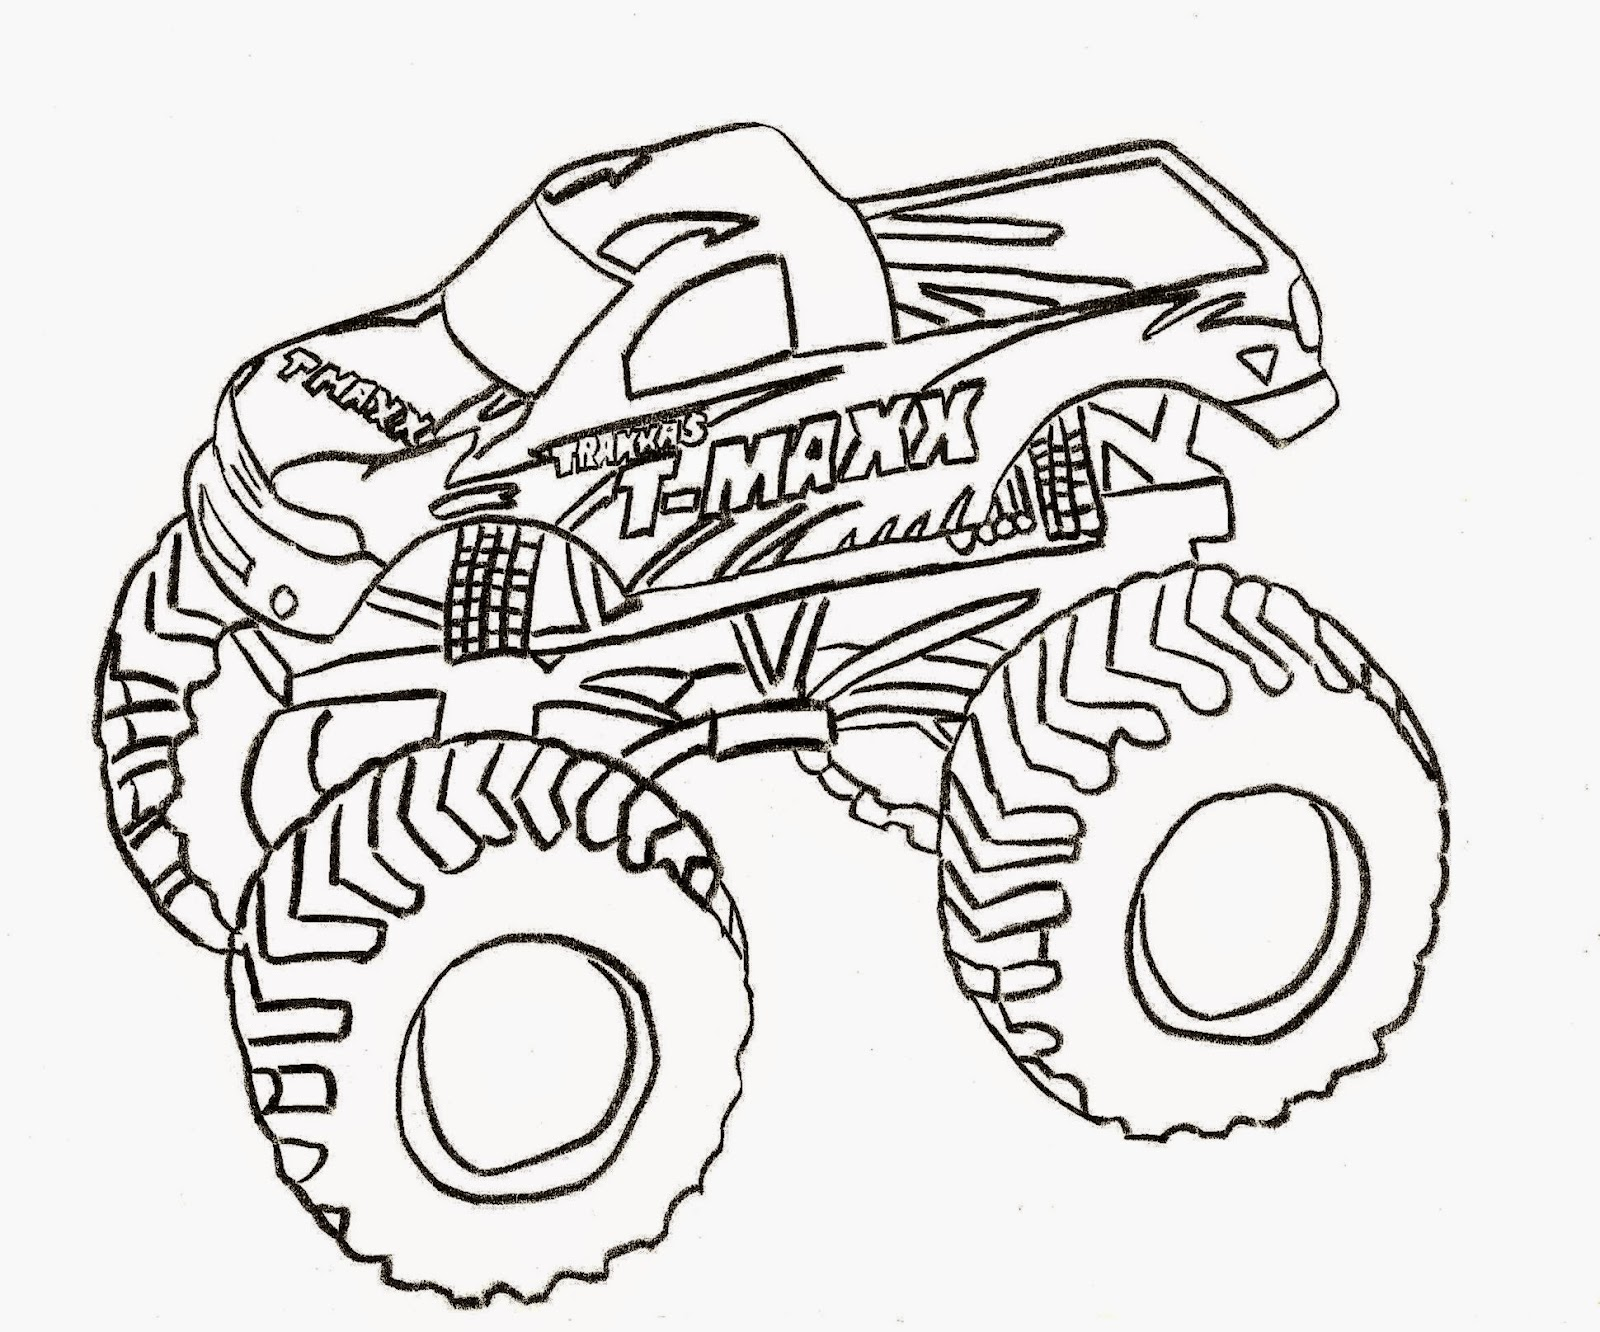 Coloring Pictures Of Trucks Free Coloring Pictures - Colour-in-pictures-for-kids